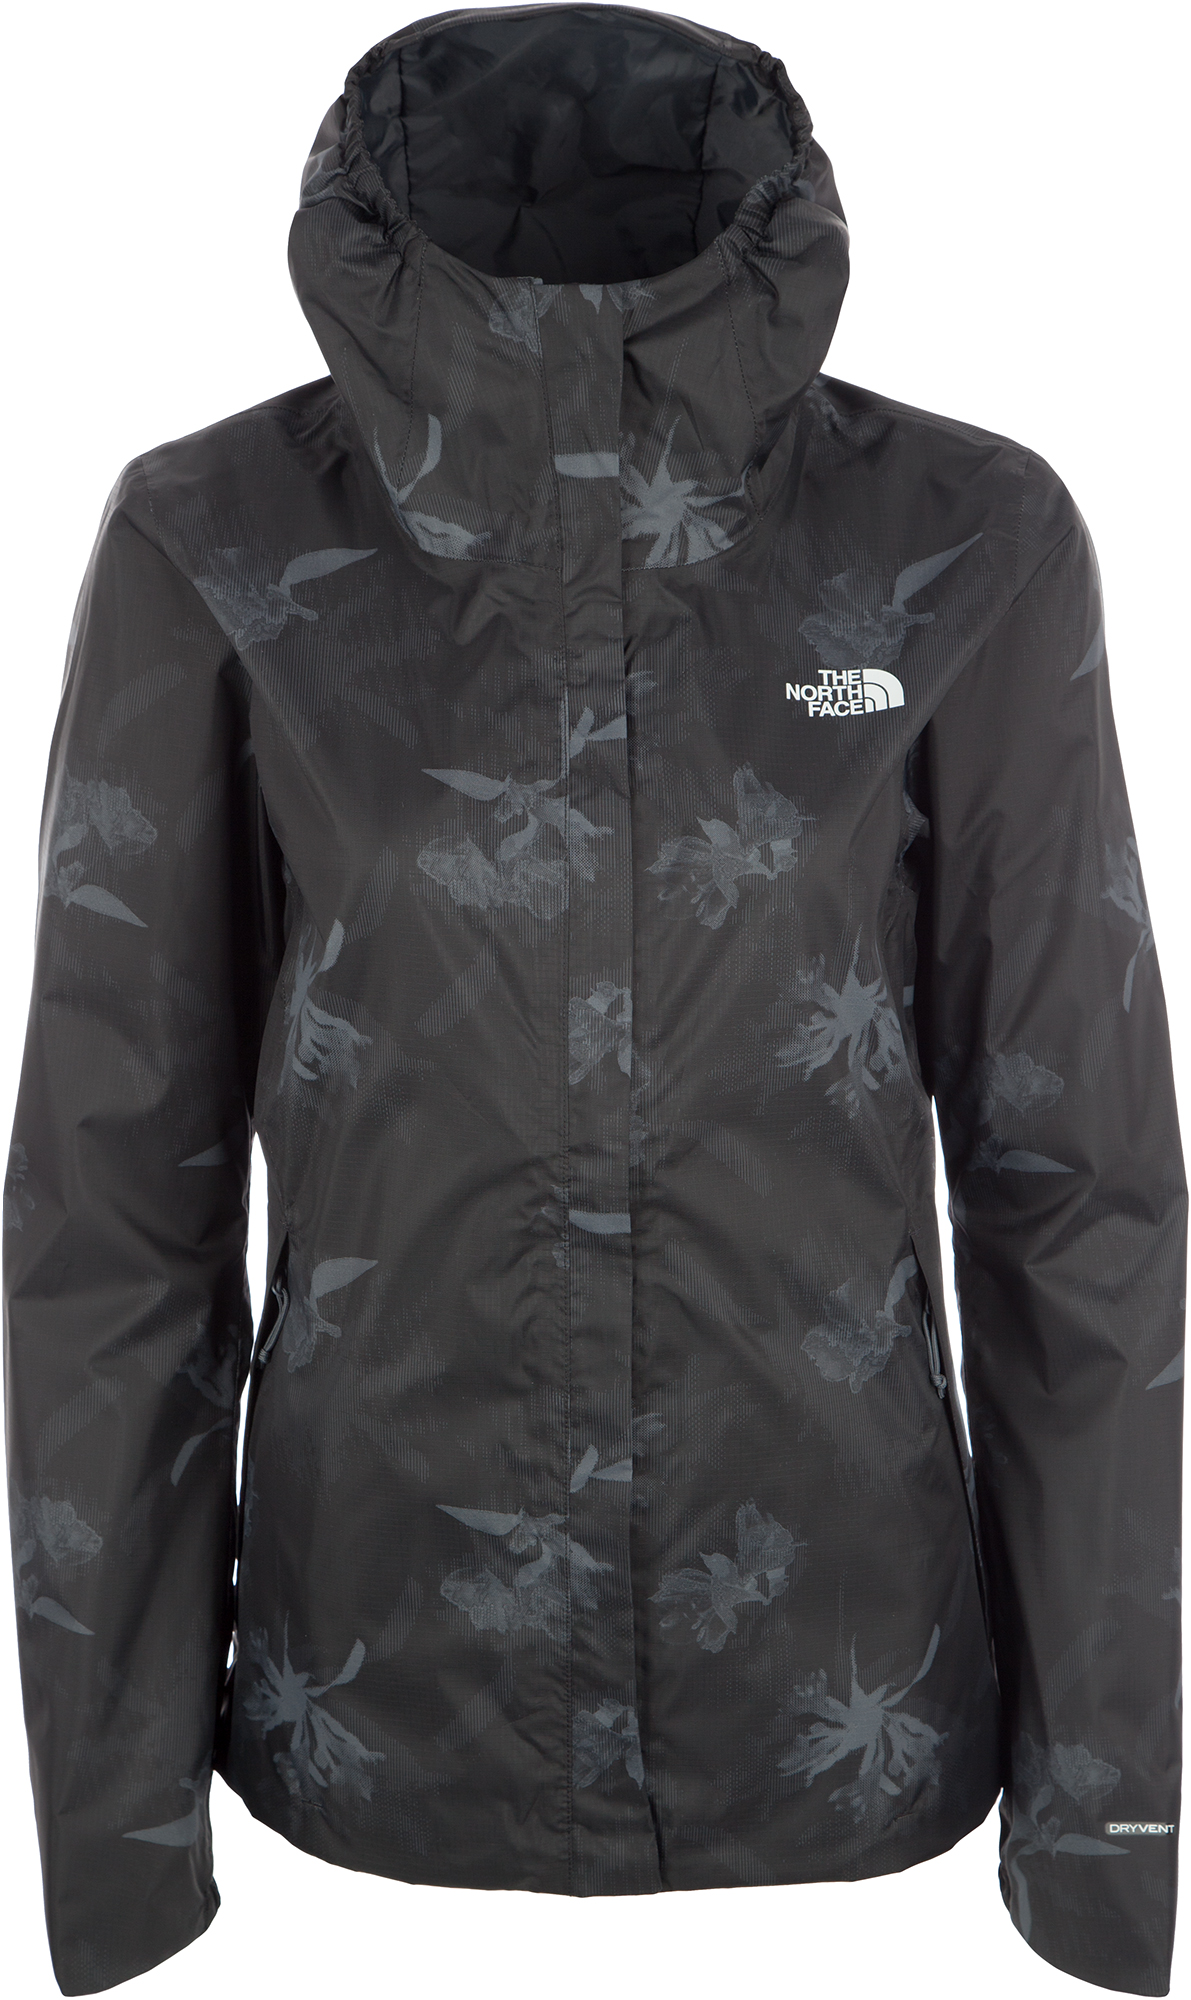 The North Face Ветровка женская The North Face Quest Print, размер 50 цена